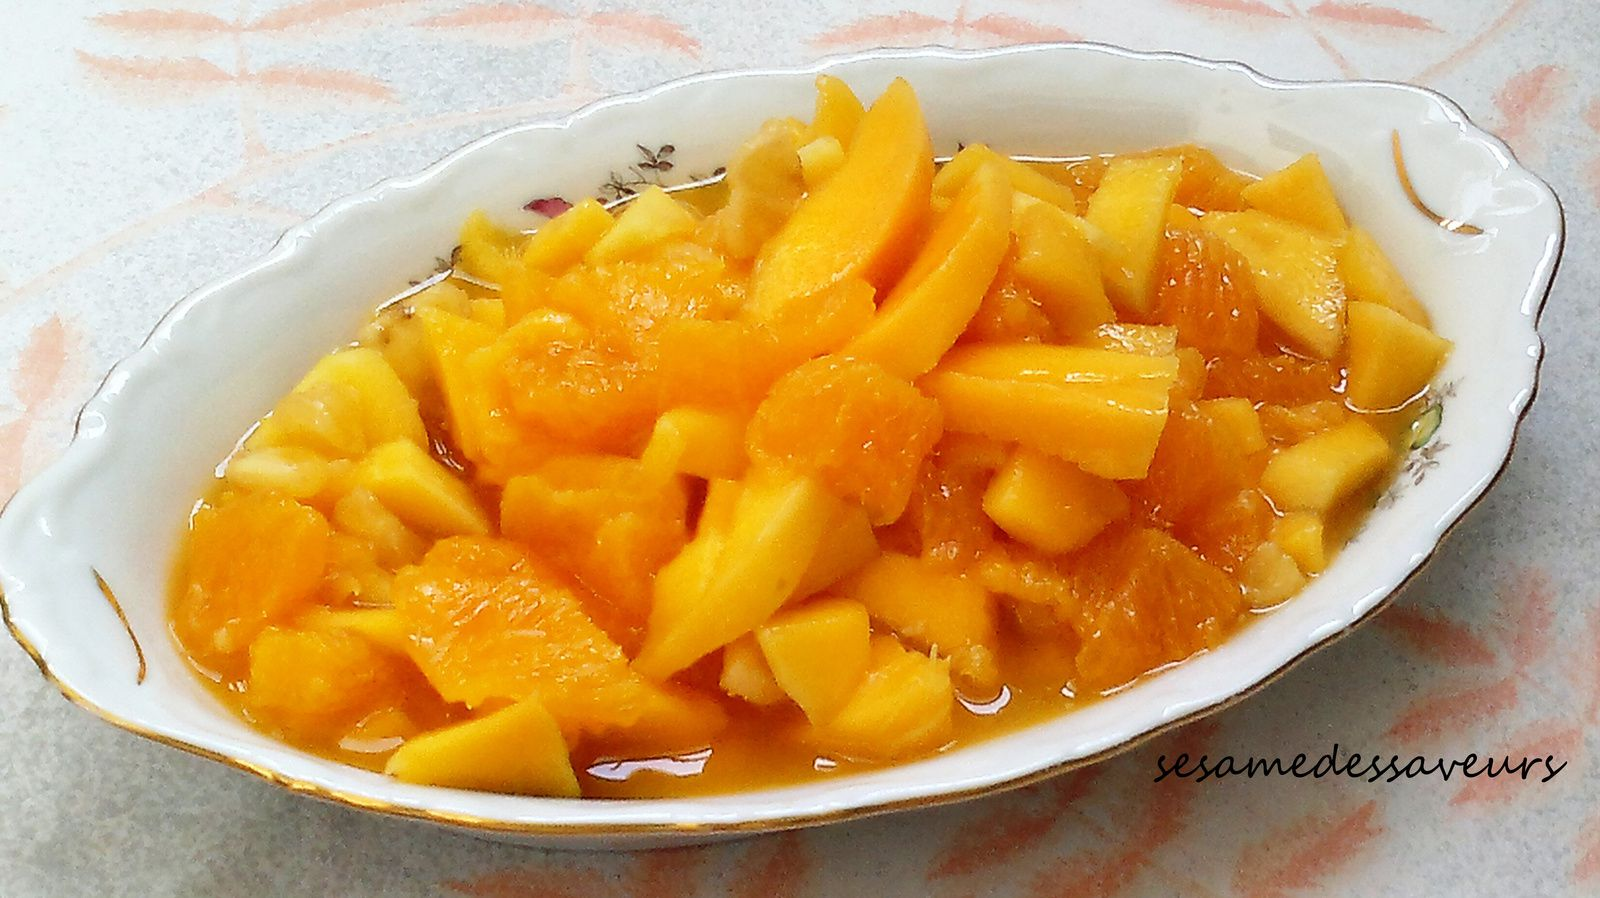 Salade de mangue à l'orange